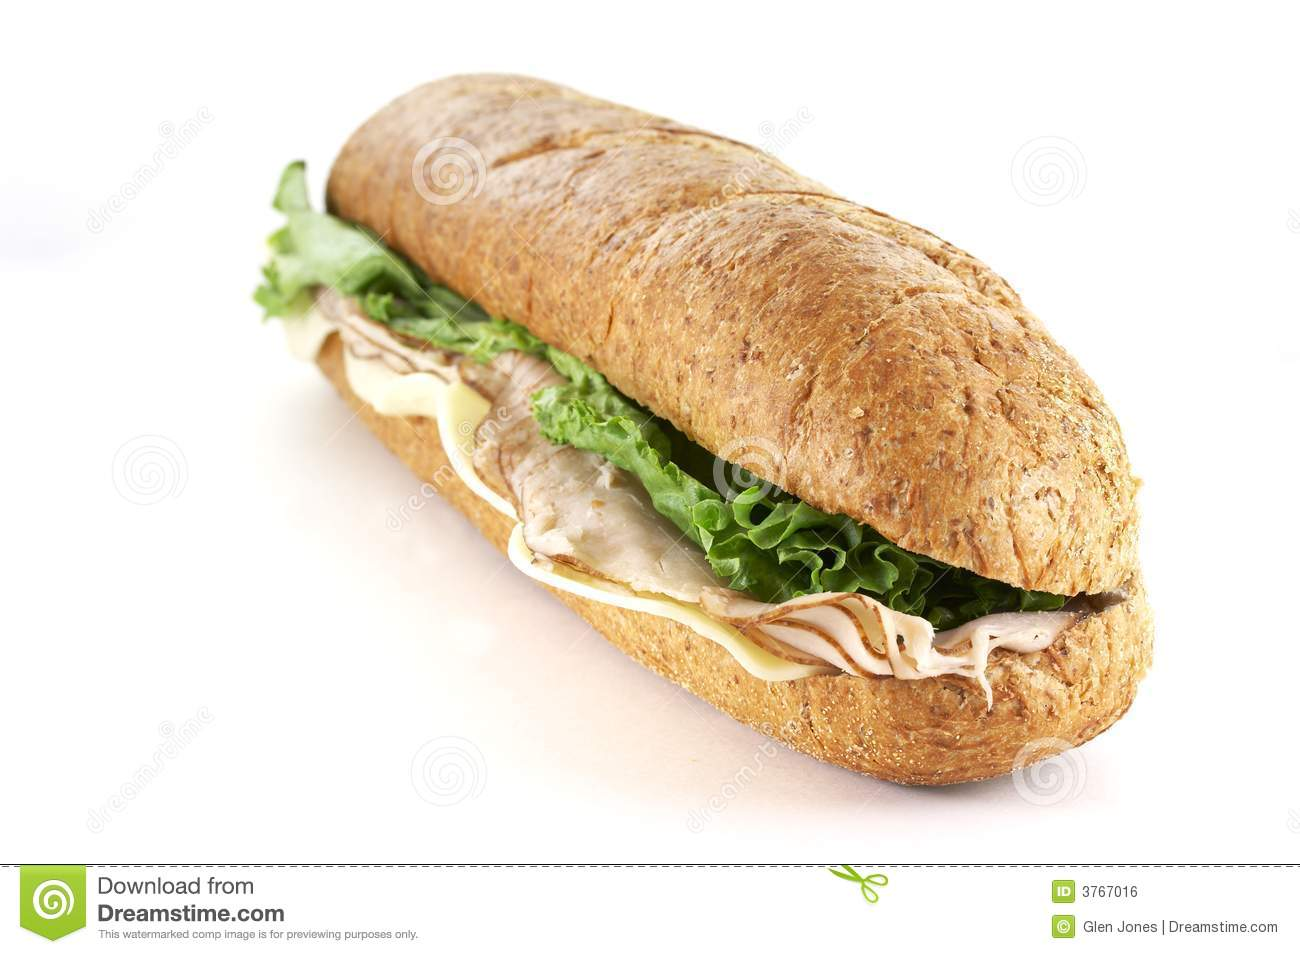 Turkey and cheese sub sandwich close up.